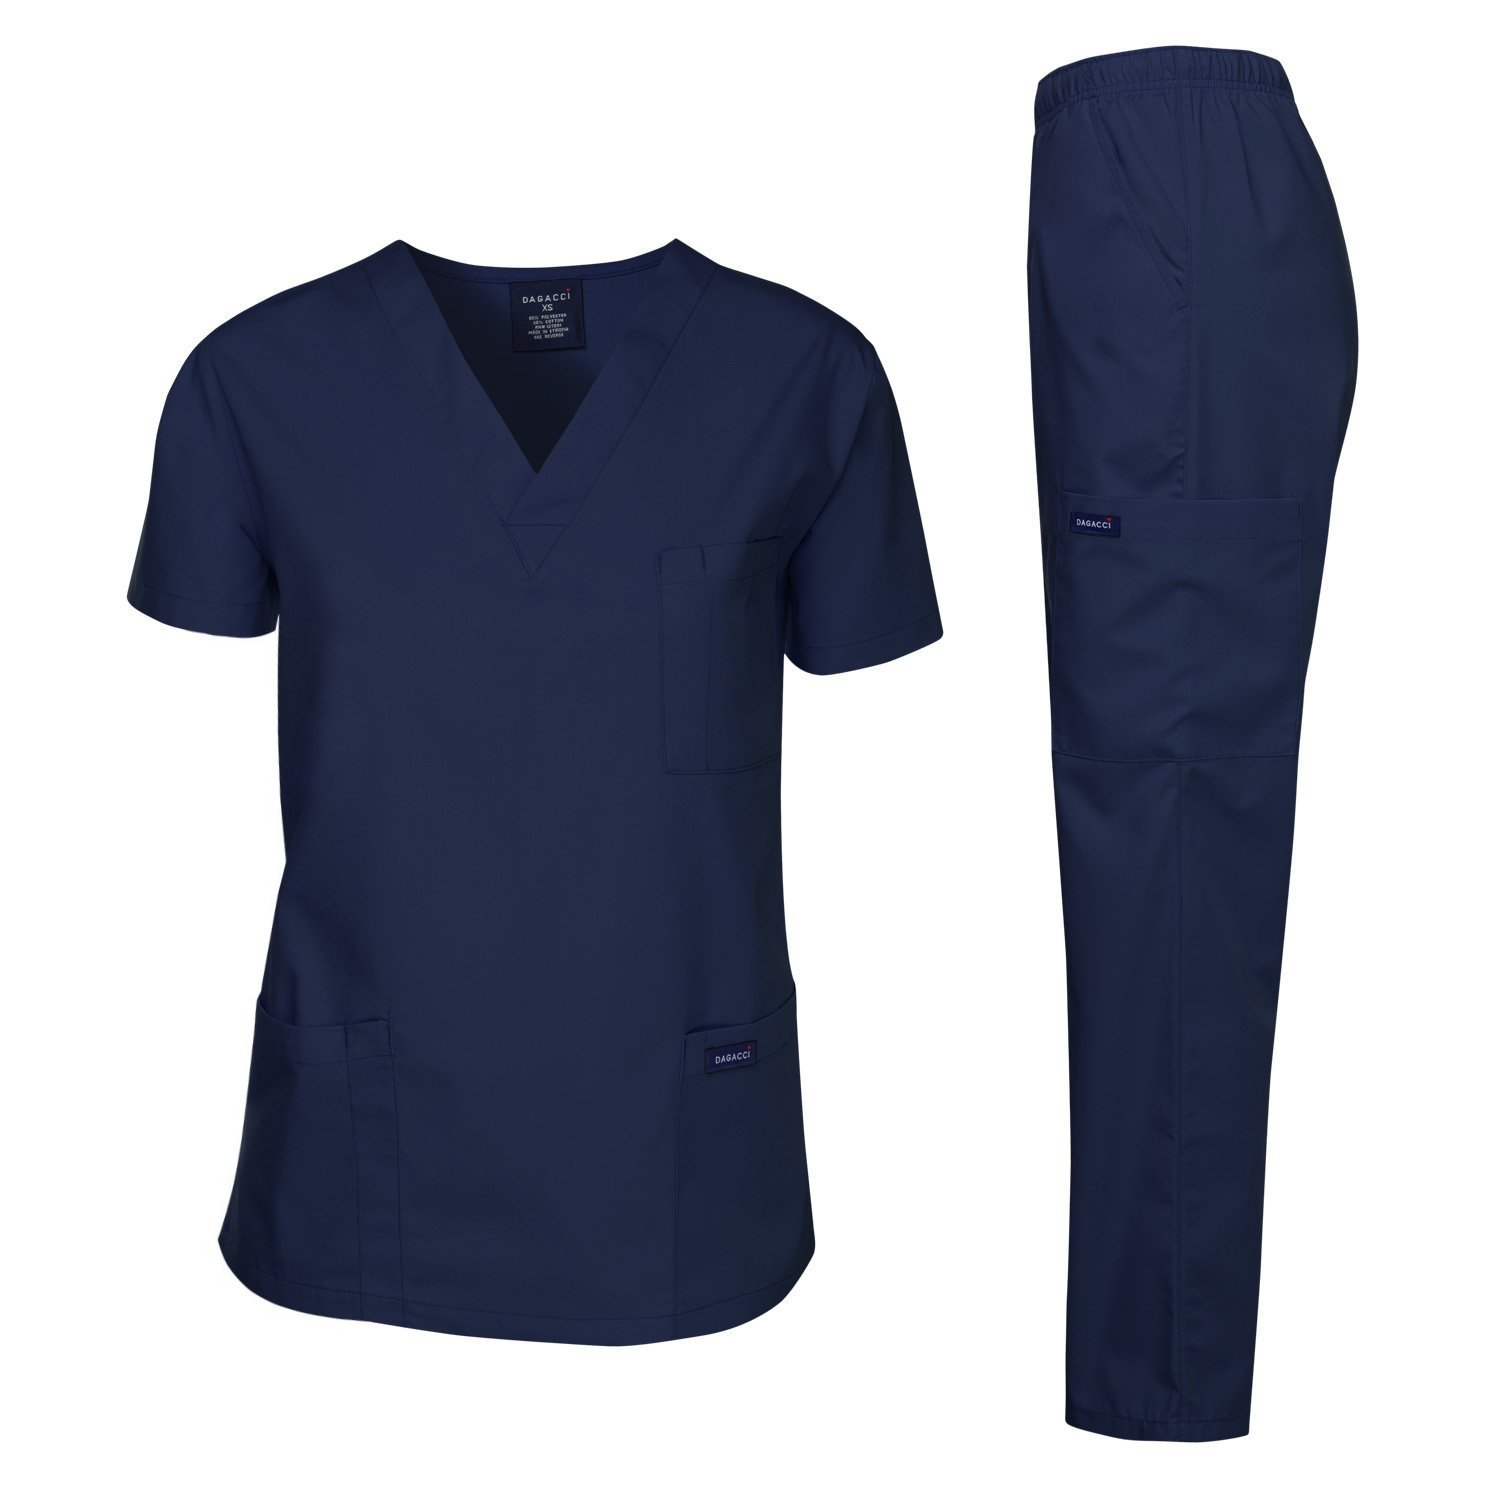 Dagacci Scrubs Medical Uniform Men Scrubs Set Medical Scrubs Top and Pants (Large, Navy)